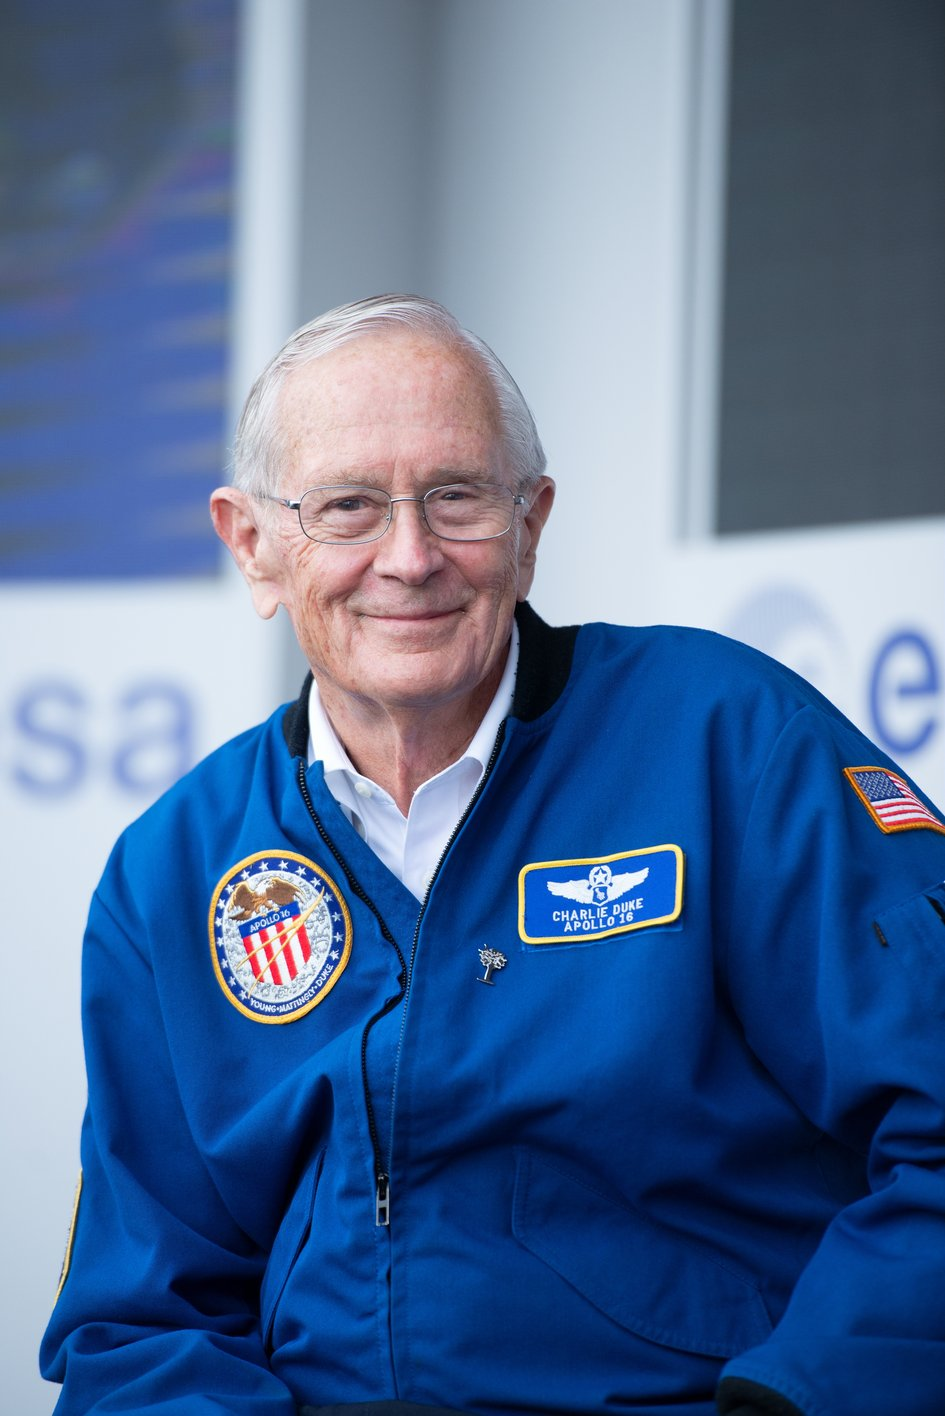 NASA Apollo astronaut Charlie Duke on the ESA stand at Le Bourget